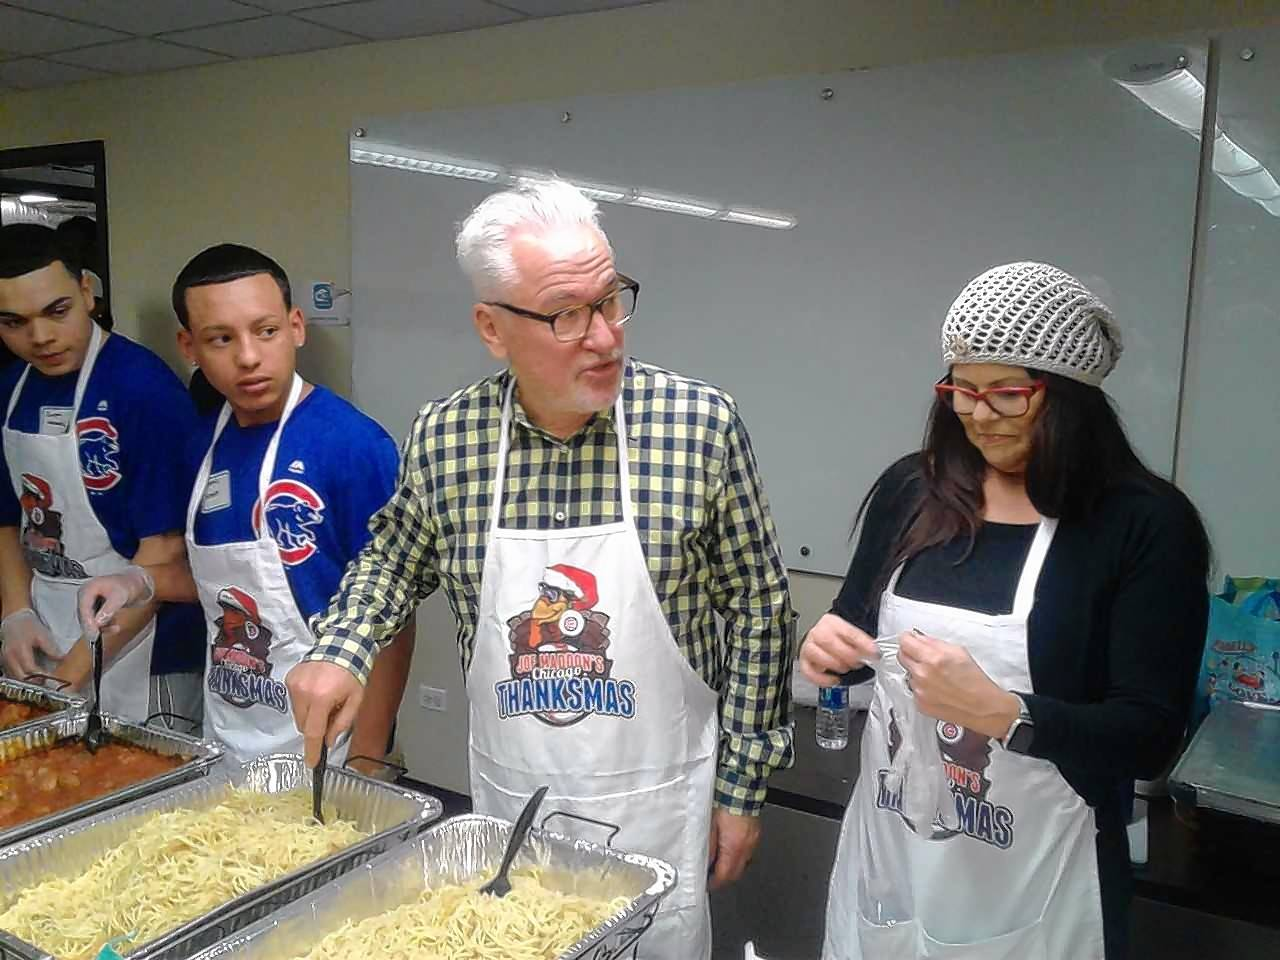 Cubs manager Joe Maddon and wife Jaye serve dinner at his Thanksmas event on Thursday at St. Leonard's Ministries on the near West Side of Chicago. Maddon said Thursday he likes the team he has coming back for 2019, despite the front office not making major moves this off-season.